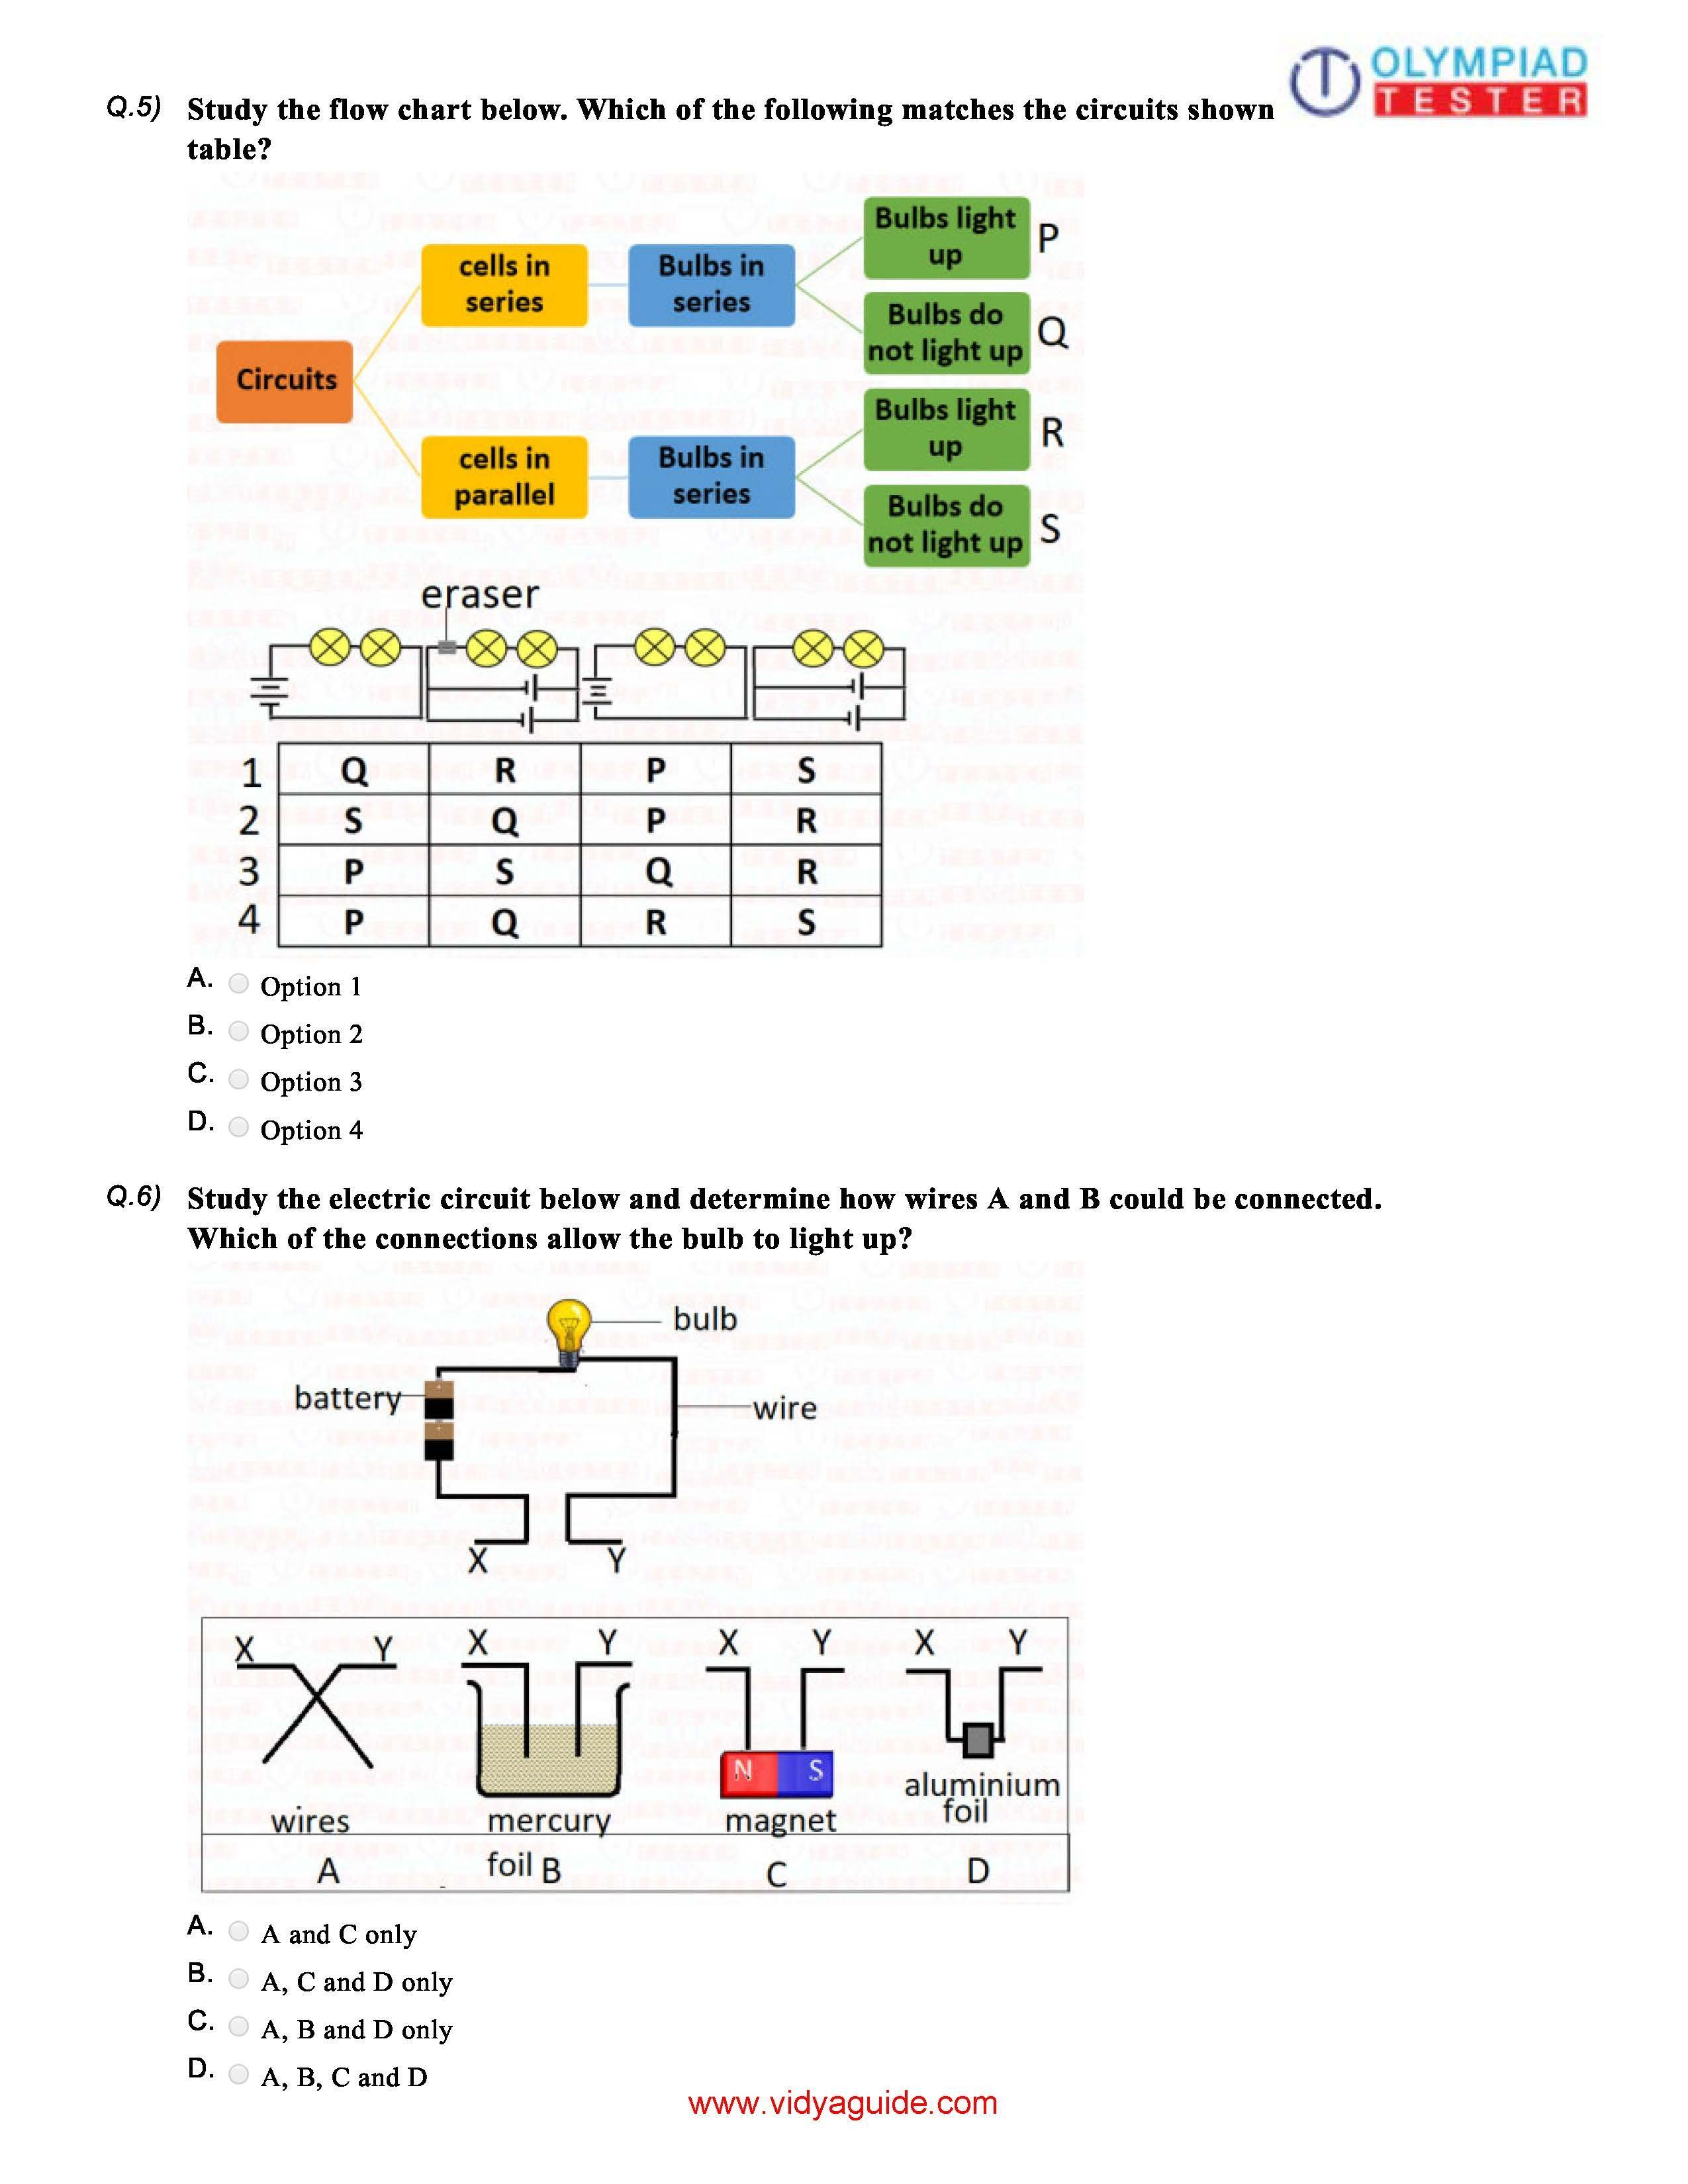 hight resolution of download 12 cbse science class 6 sample papers on electricity and questions year 6 electrical diagrams 2 year 6 circuit questions year 6